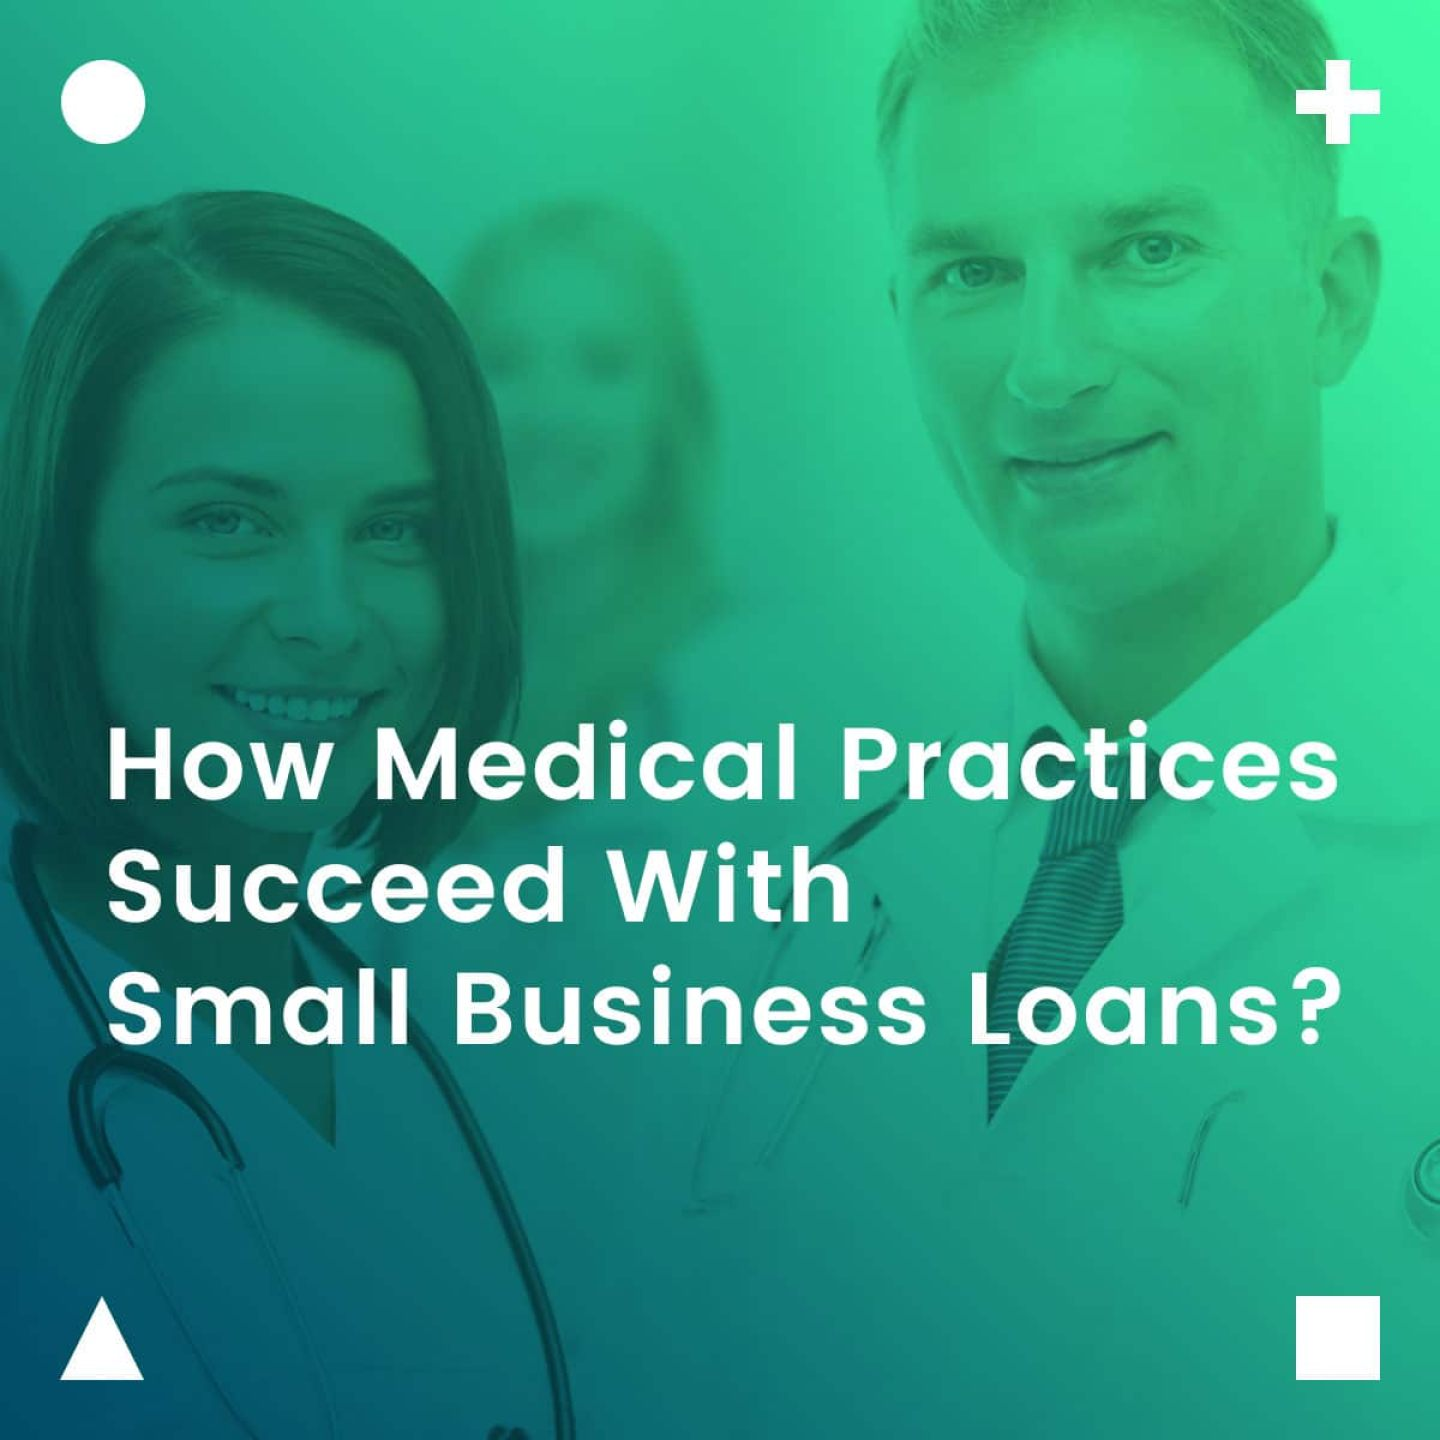 How-Medical-Practices-Succeed-With-Small-Business-Loans